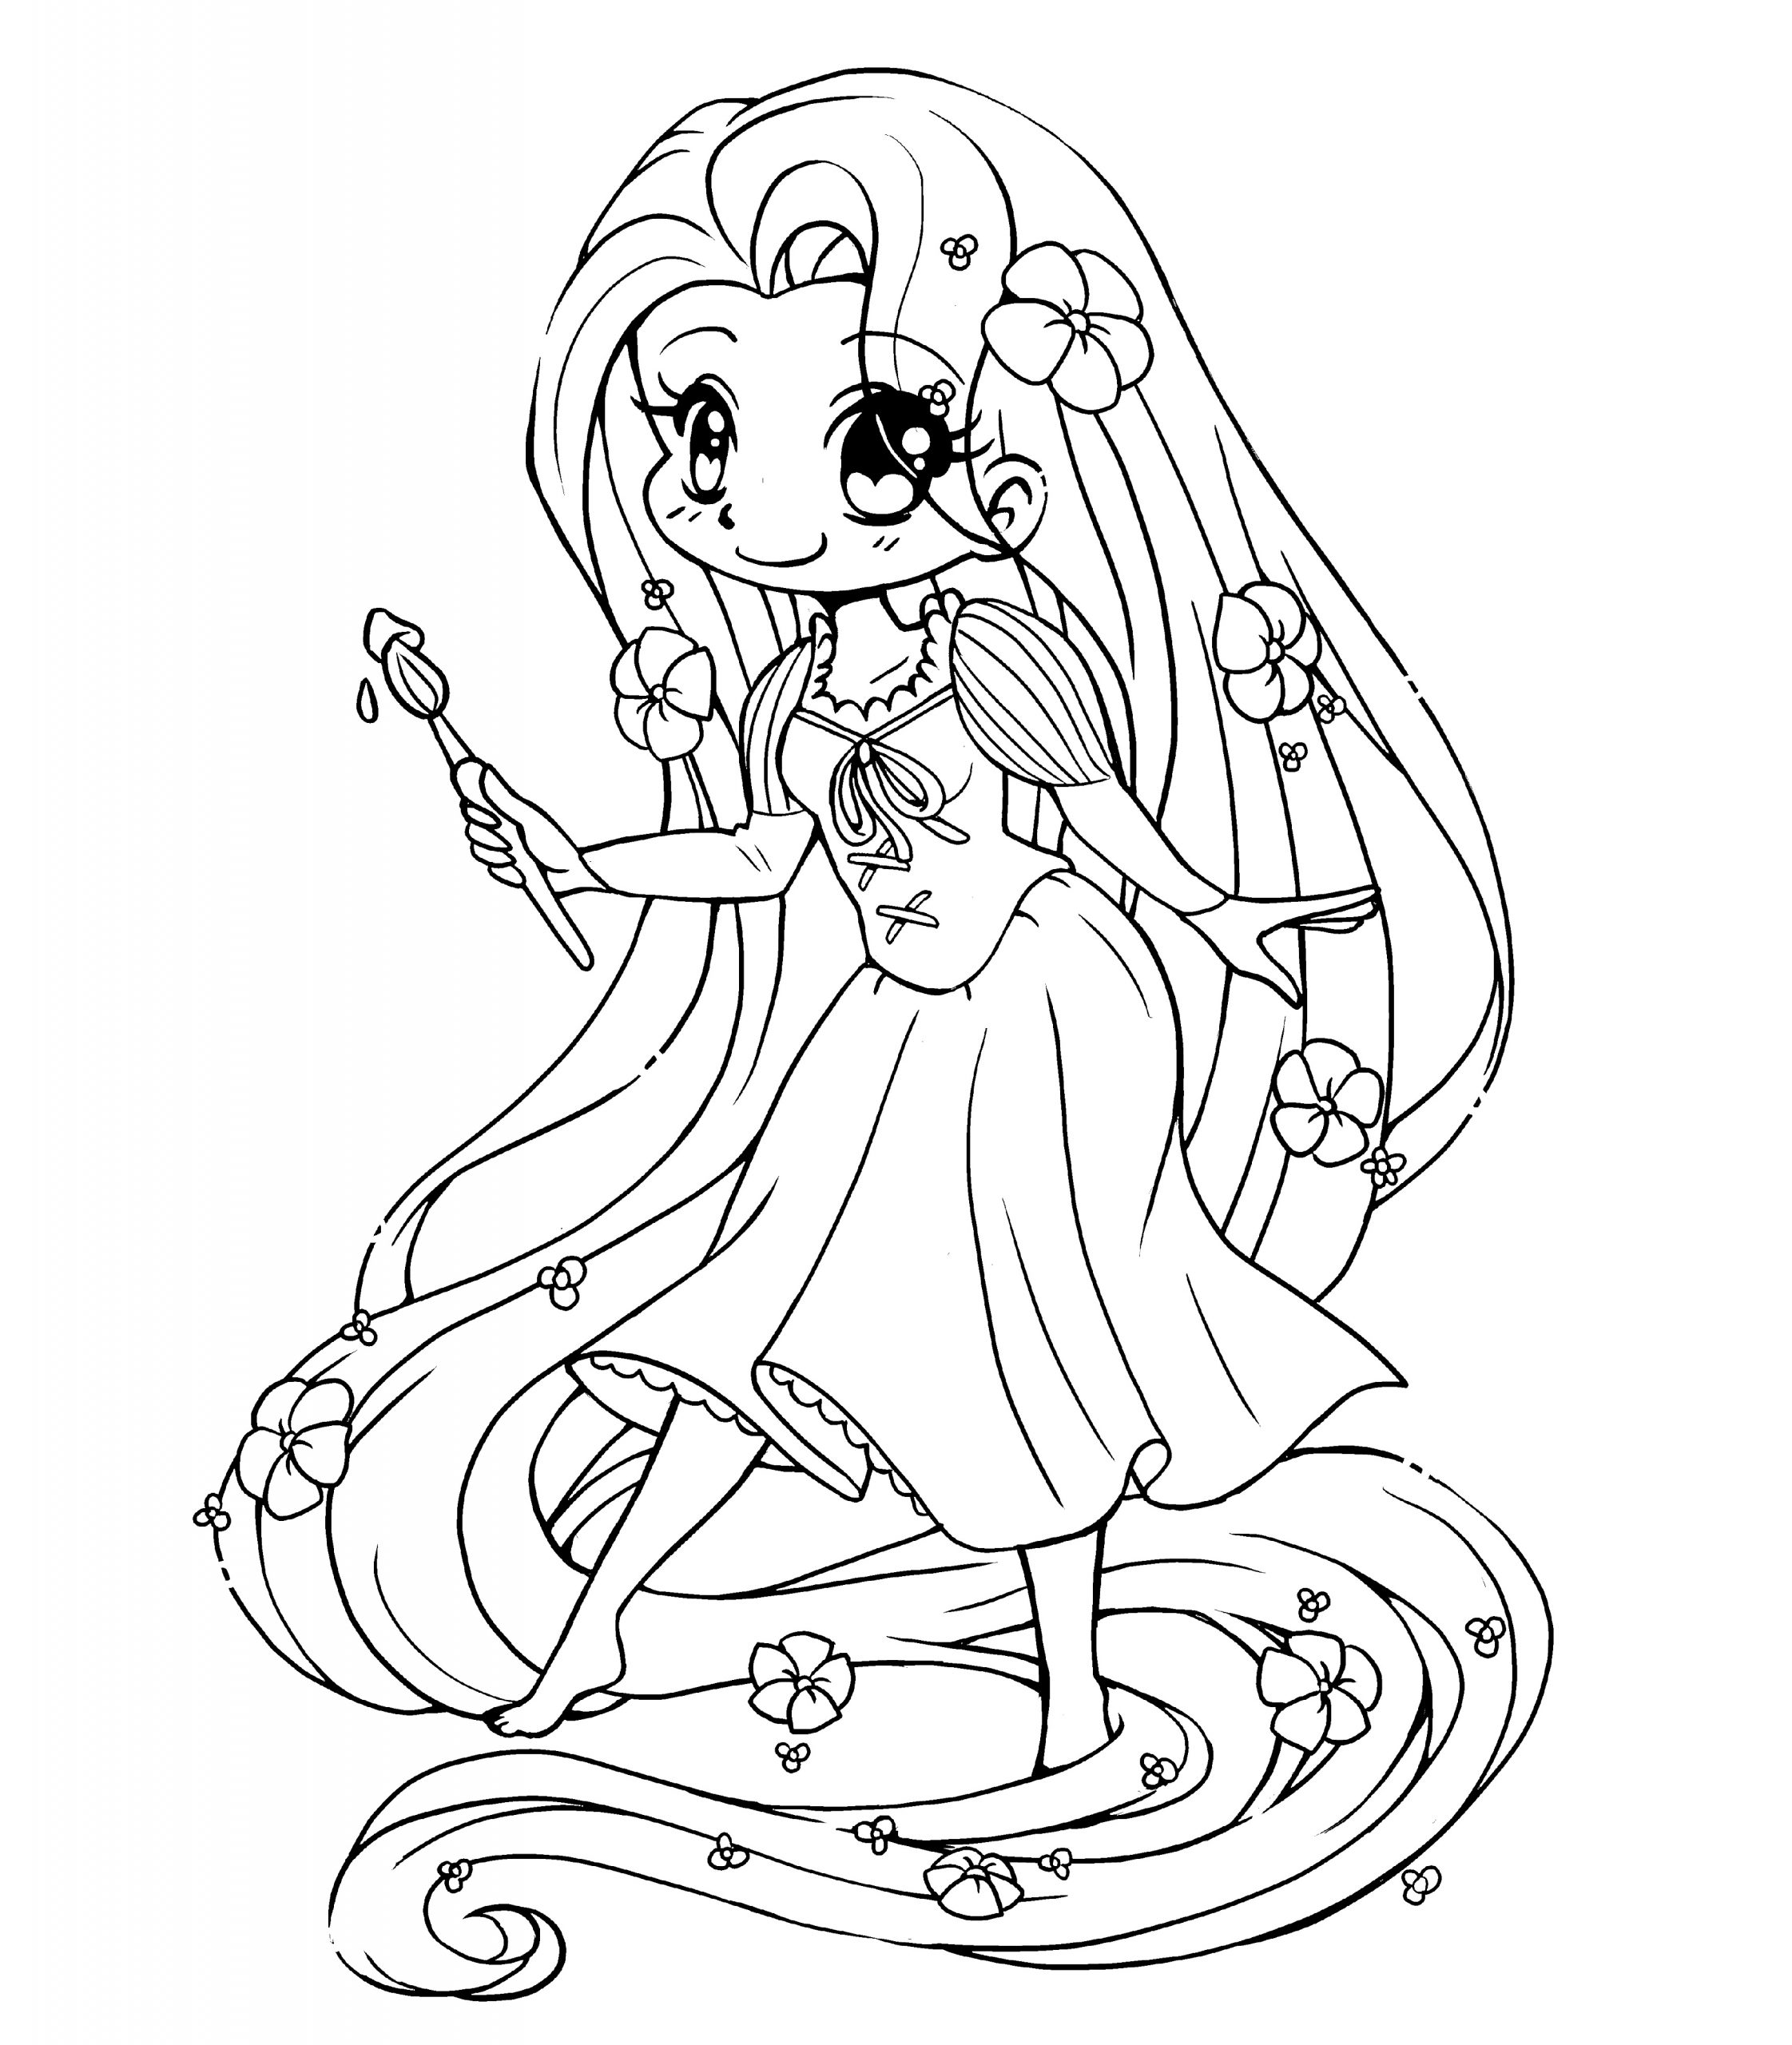 tangled pictures to colour coloriage disney princess coloring pages princess tangled to pictures colour